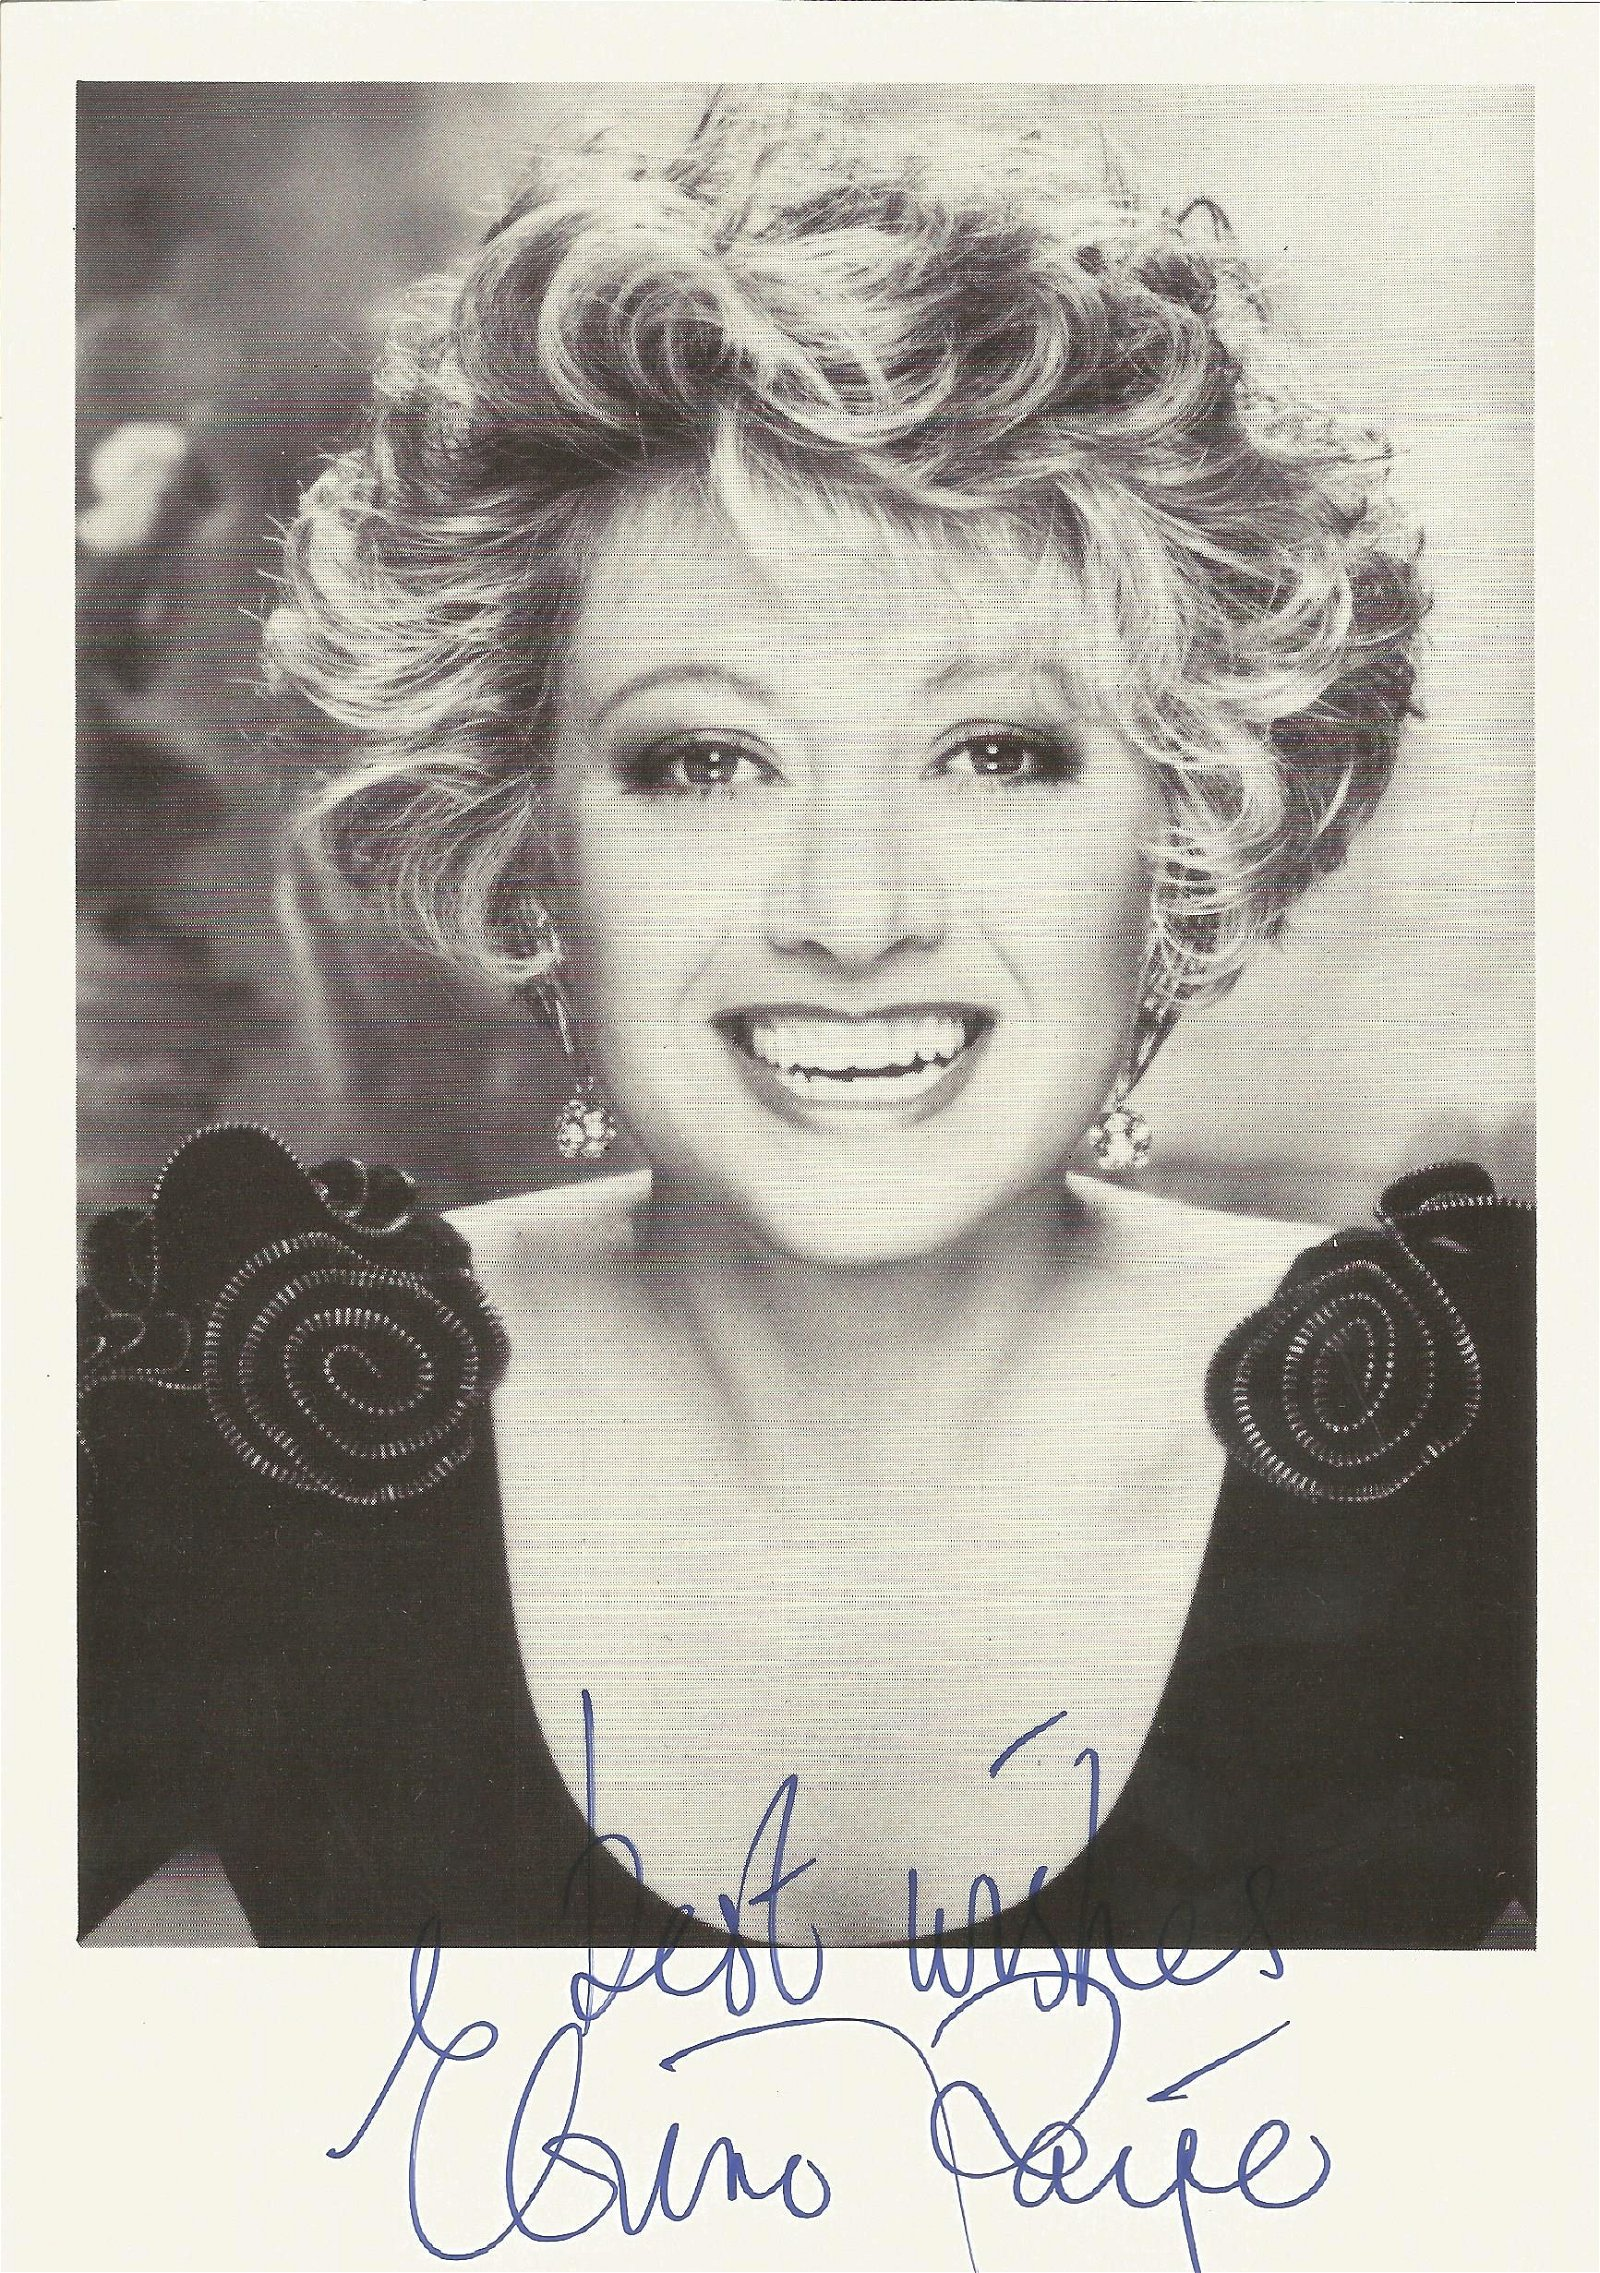 Elaine Paige Signed 5x7 Photo . Good Condition. All